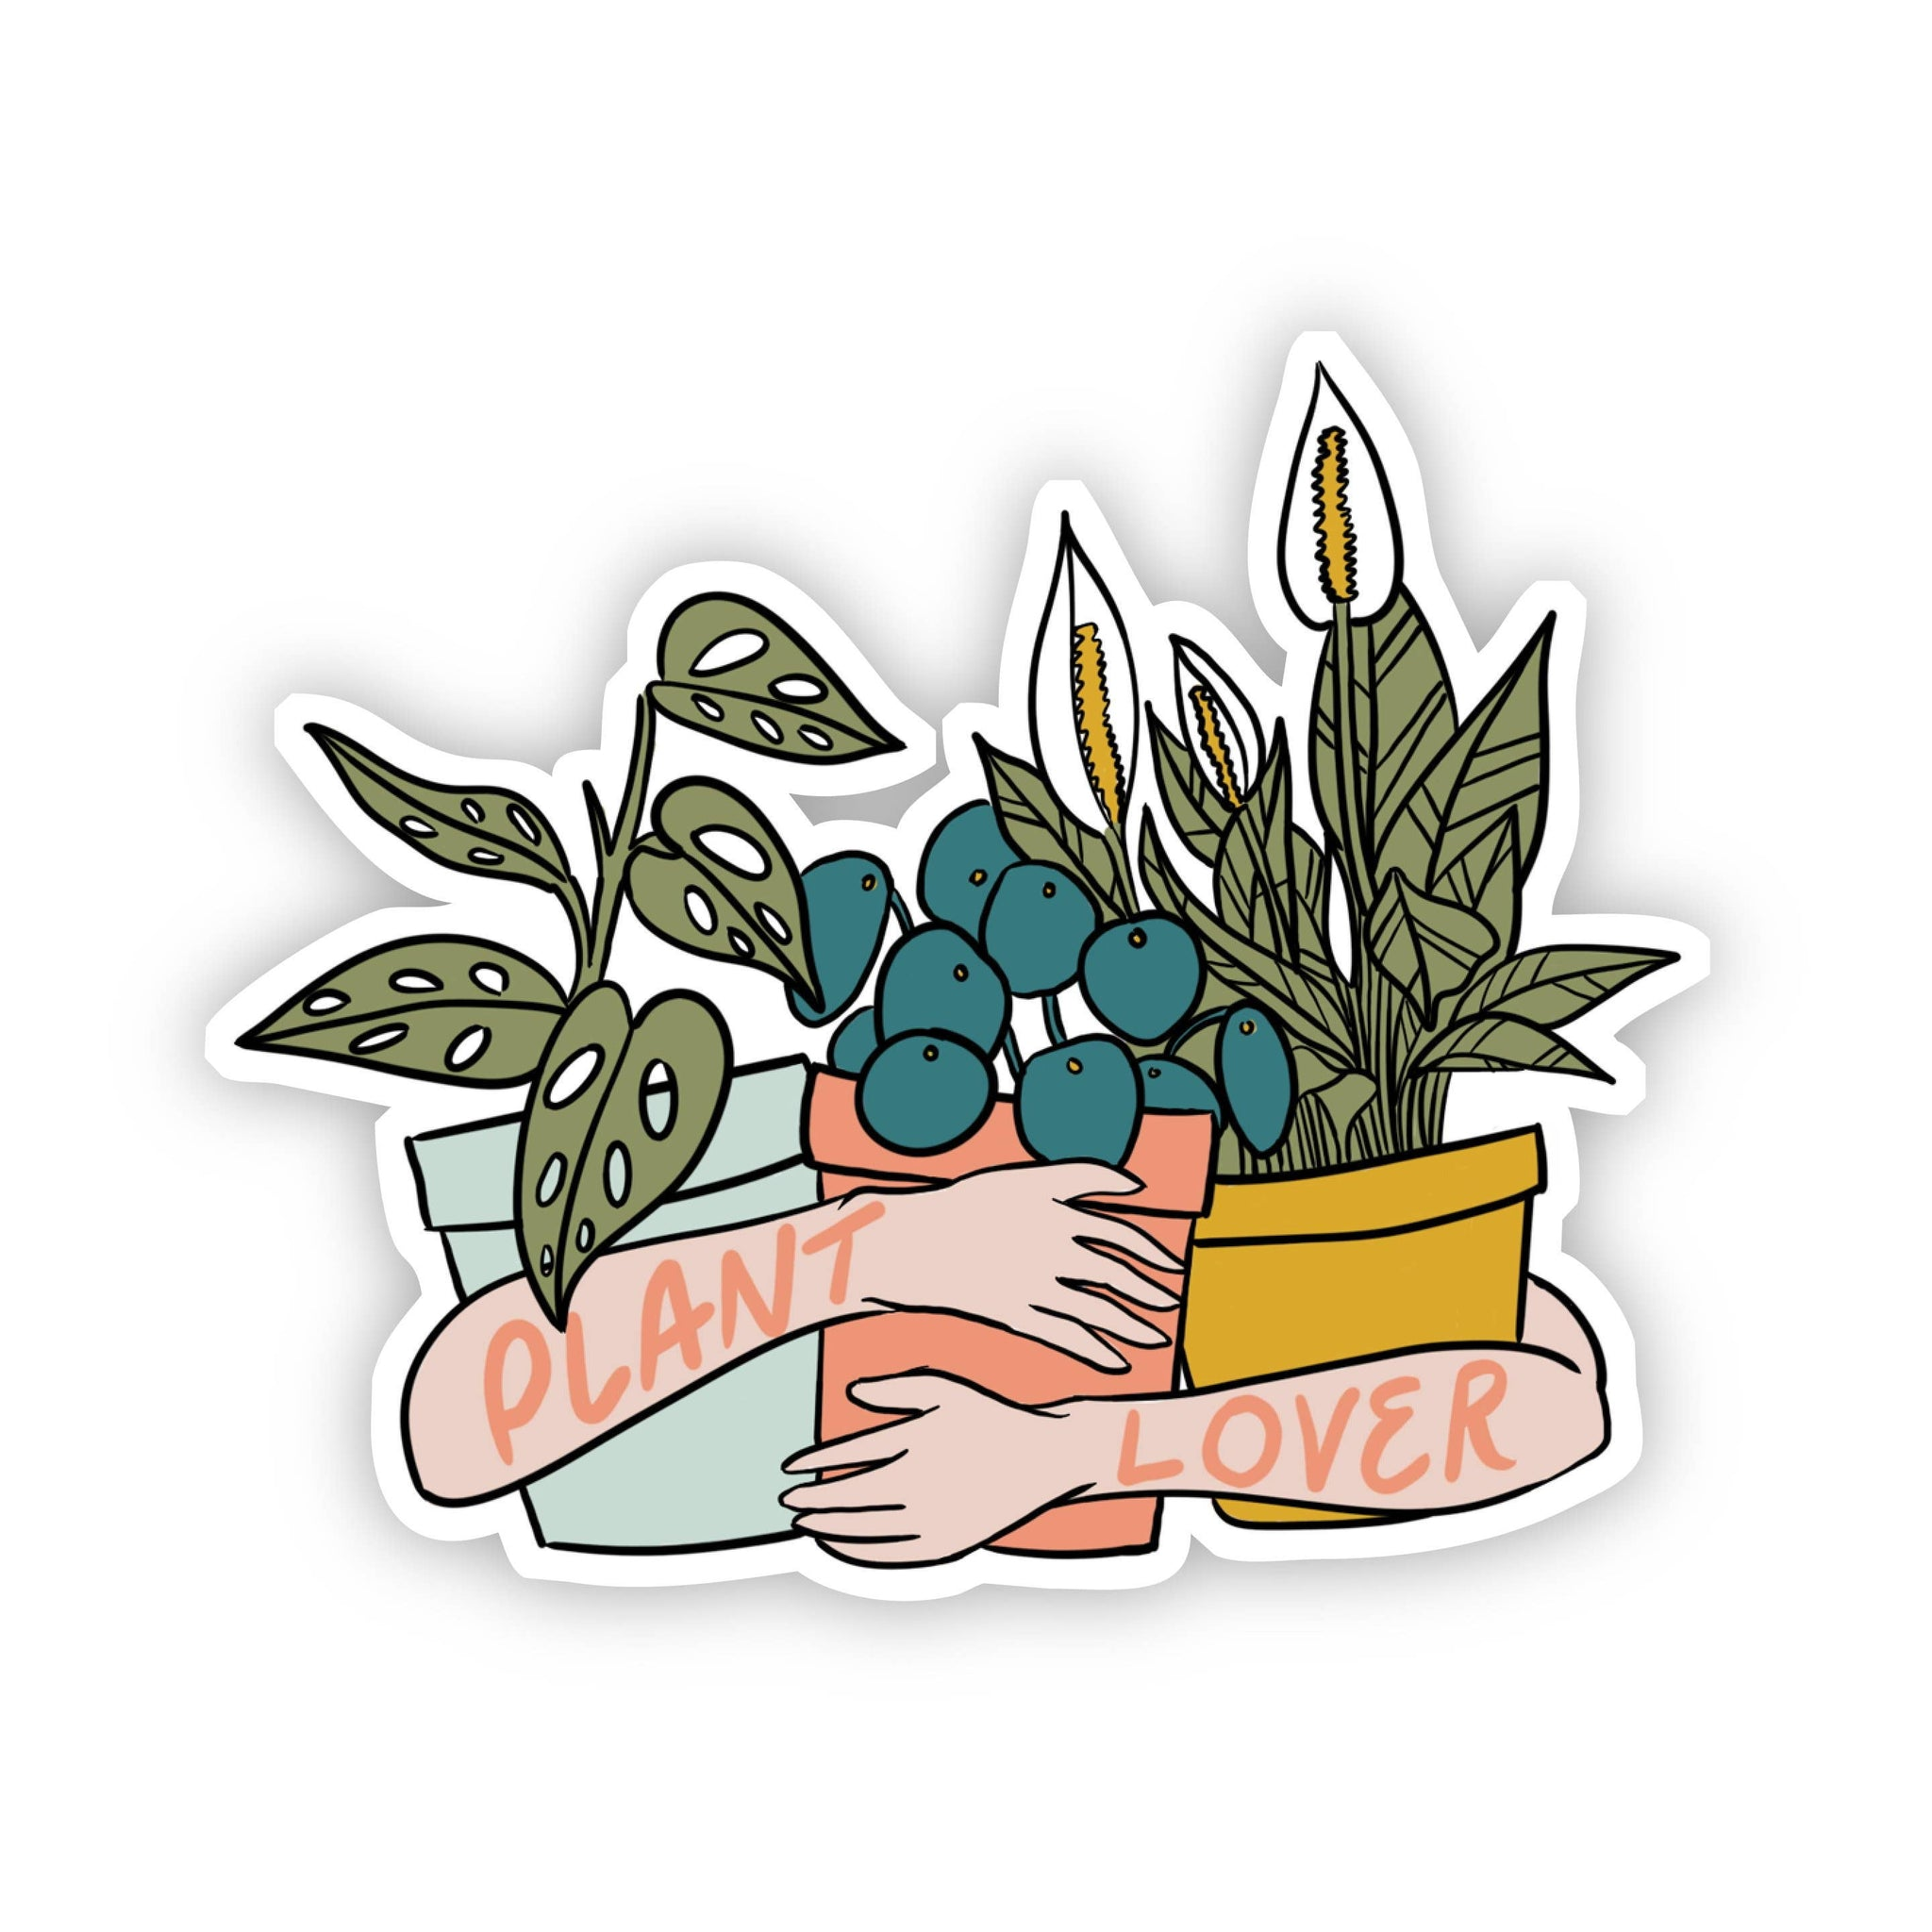 Big Moods - Plant Lover Light Arms Sticker